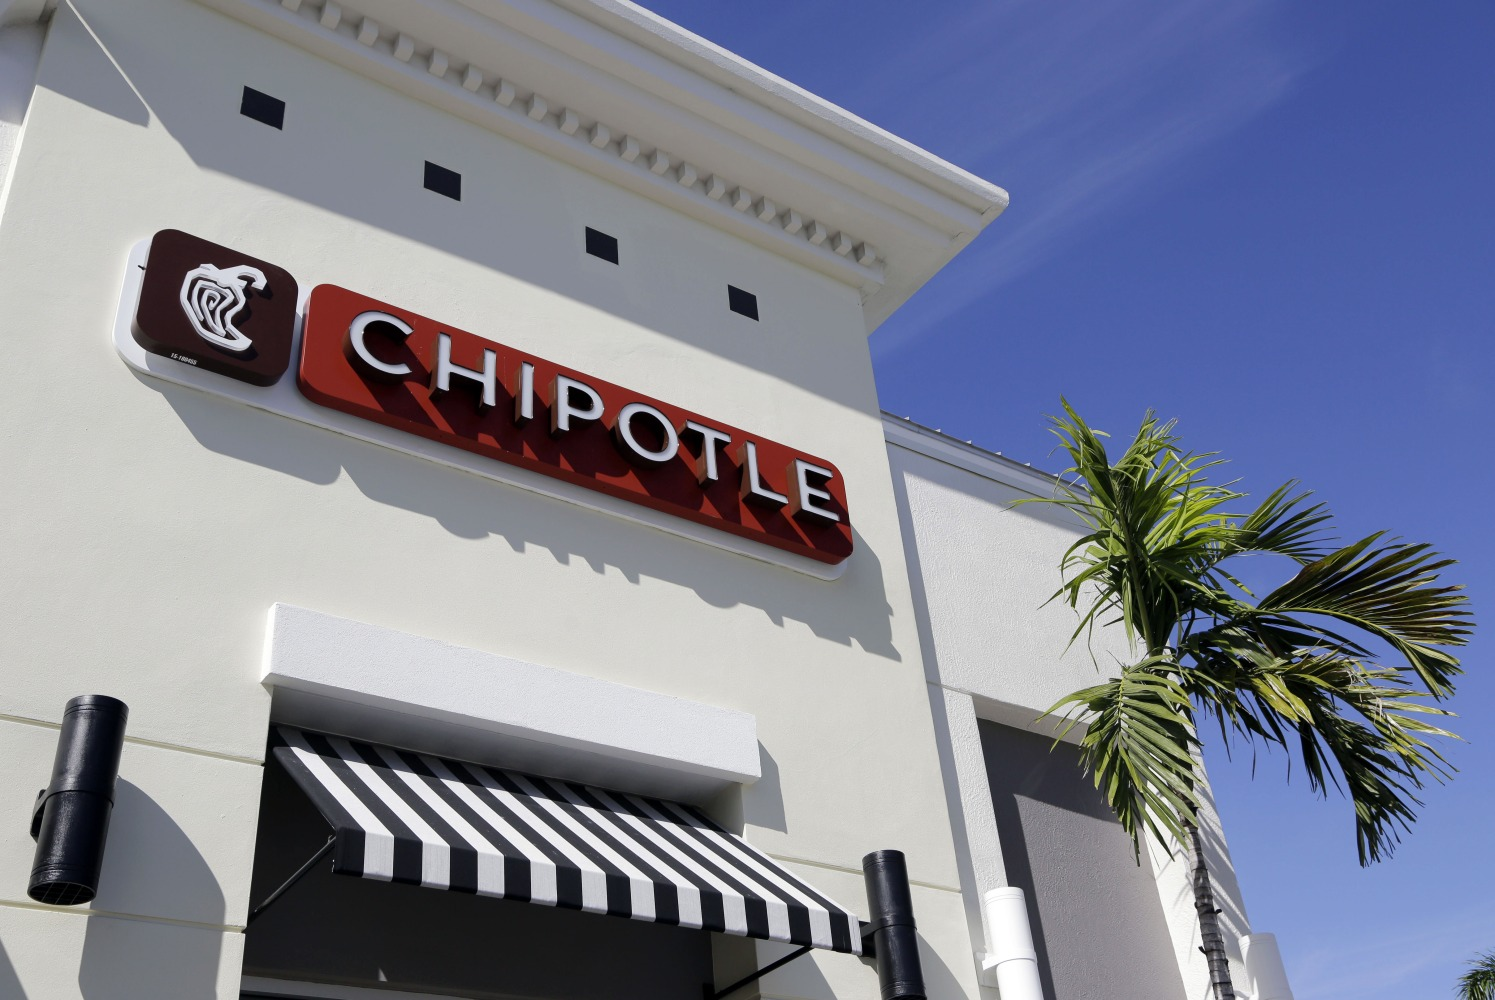 Jun 27, · Watch video· Chipotle to close up to 65 stores this year. Other changes coming to the brand include new menu items, more robust marketing and a national loyalty program.